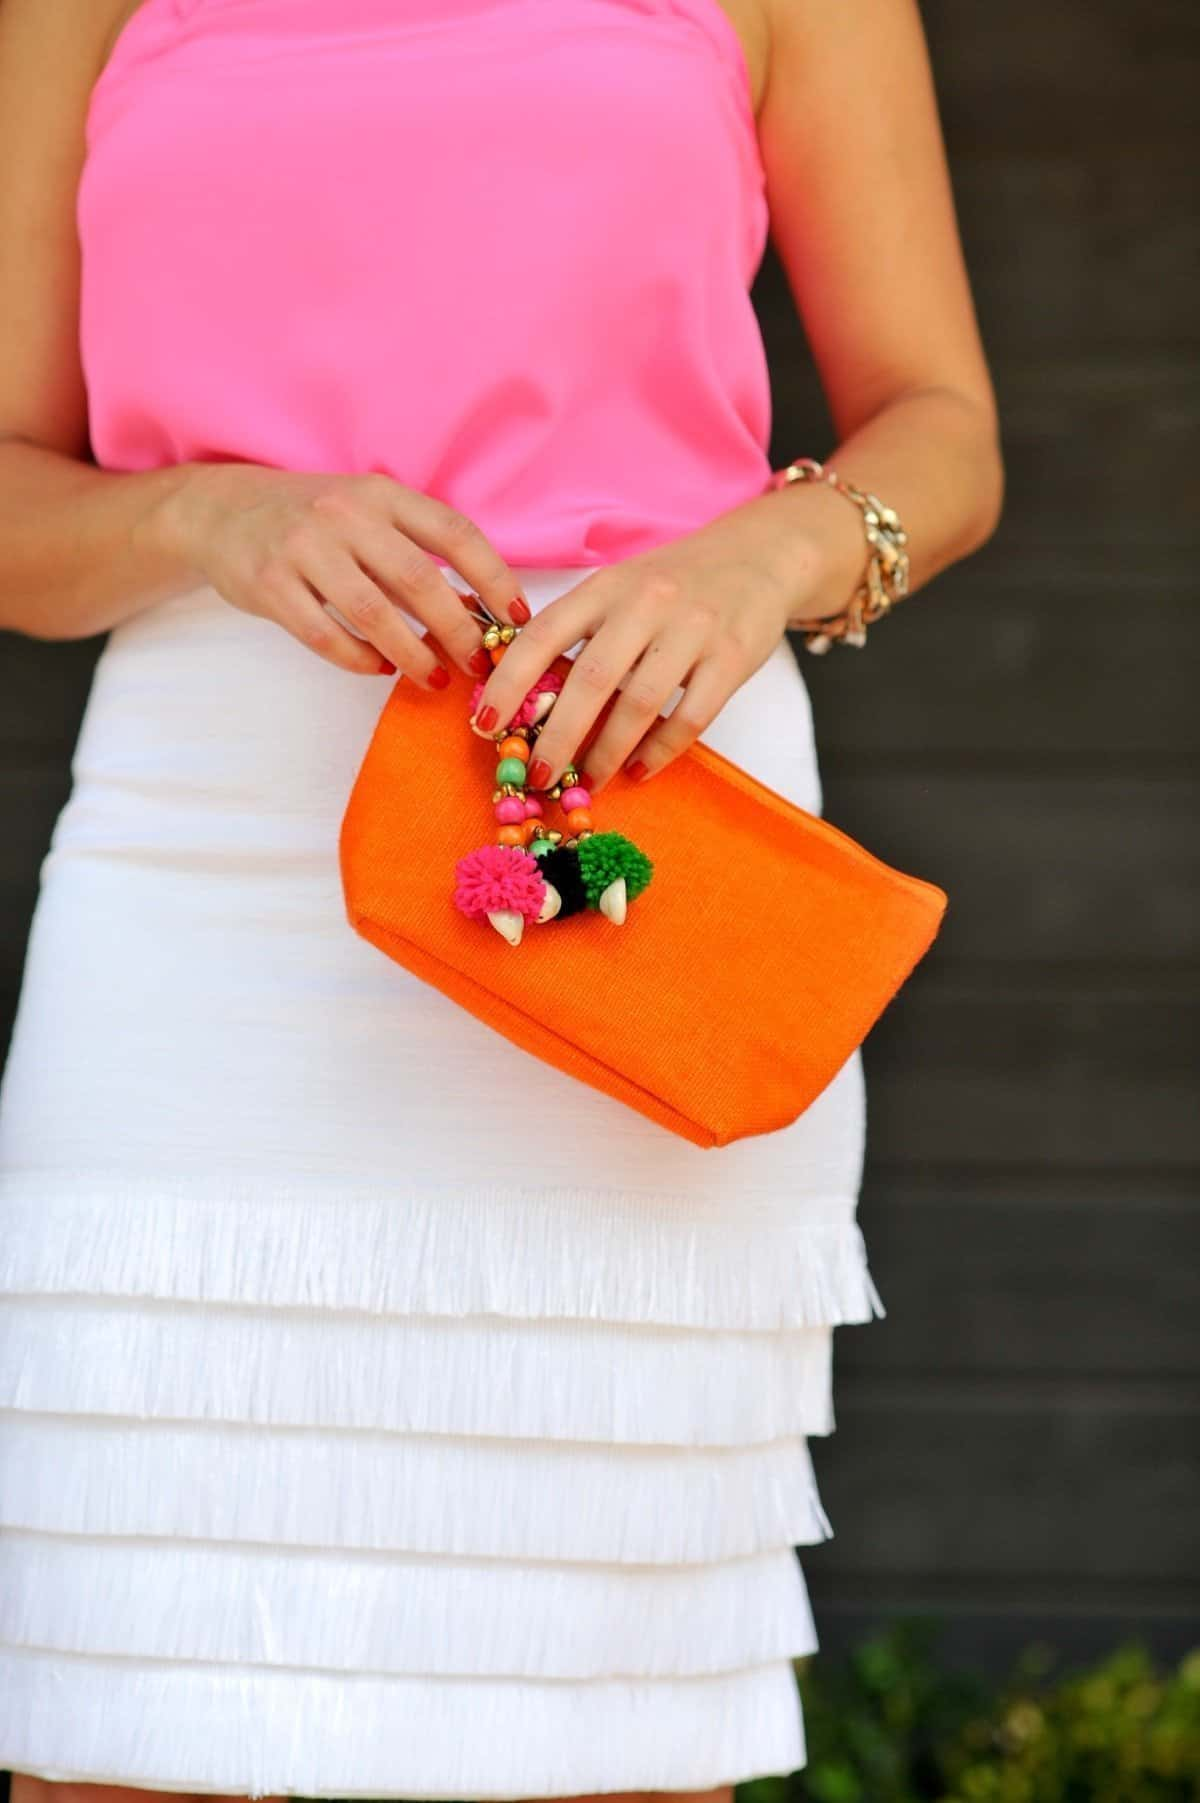 Tropical outfit ideas - Trina Turk Outfits - My Style Vita @mystylevita